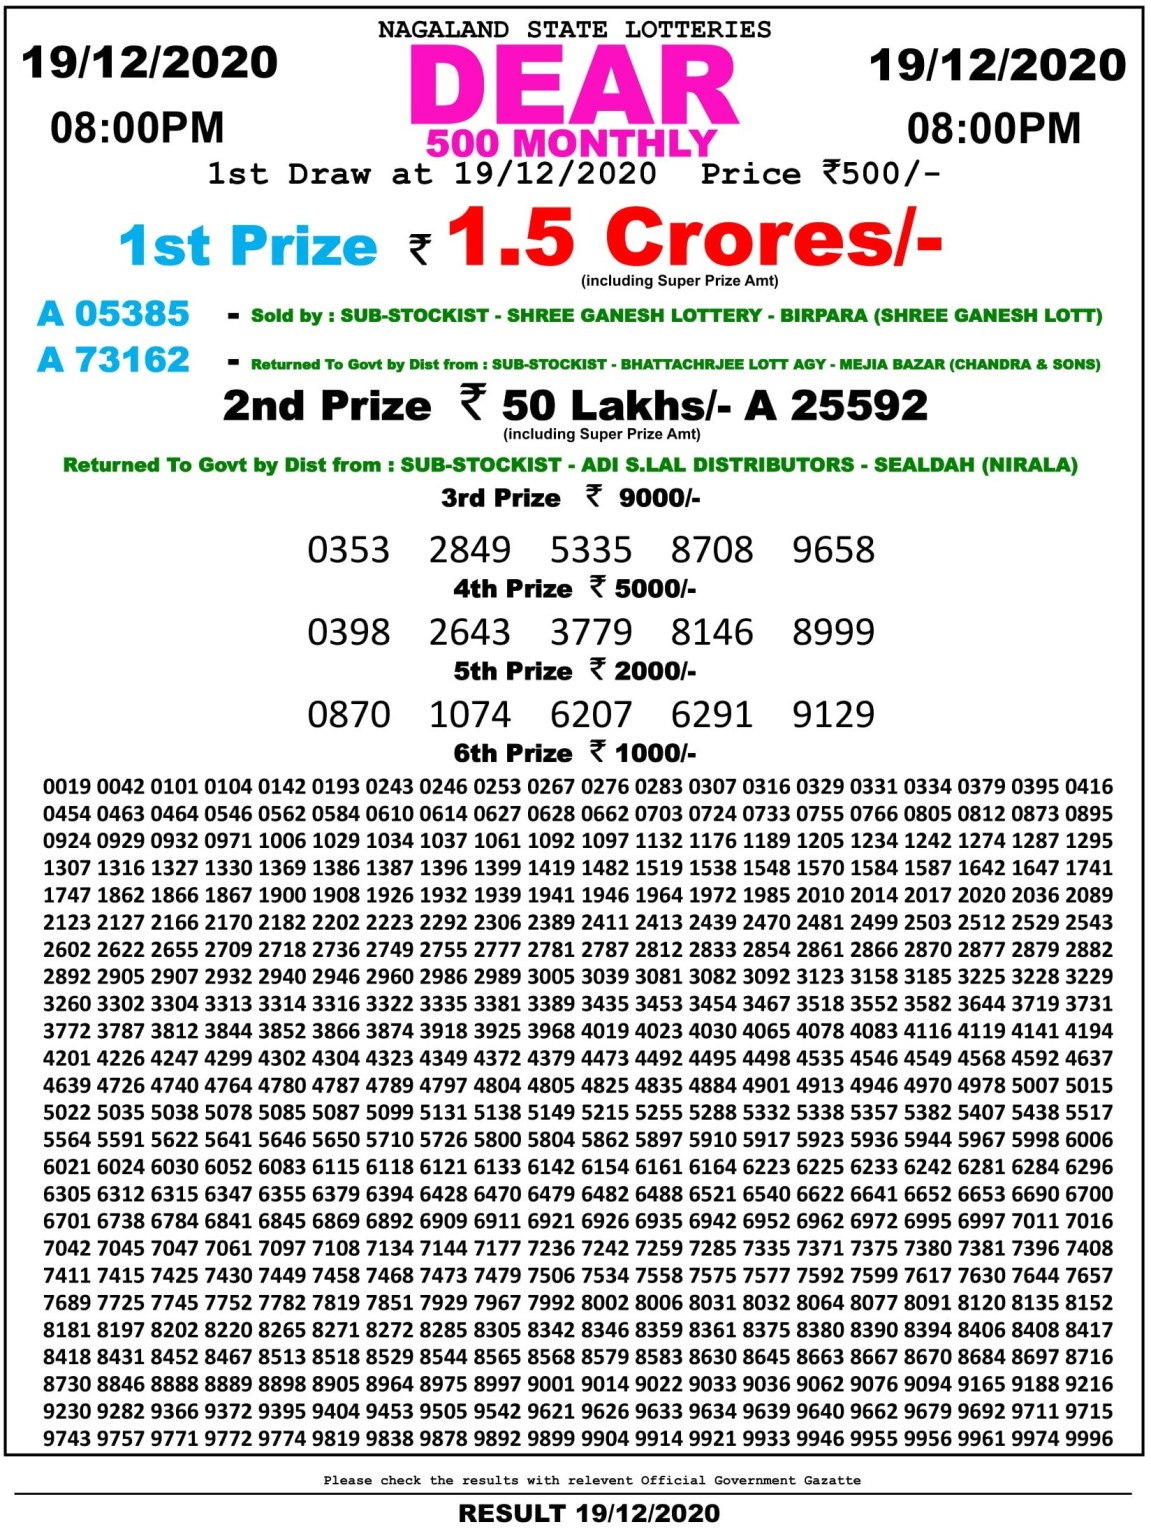 Nagaland Dear 500 Monthly Lottery Result 19.12.2020 8 PM